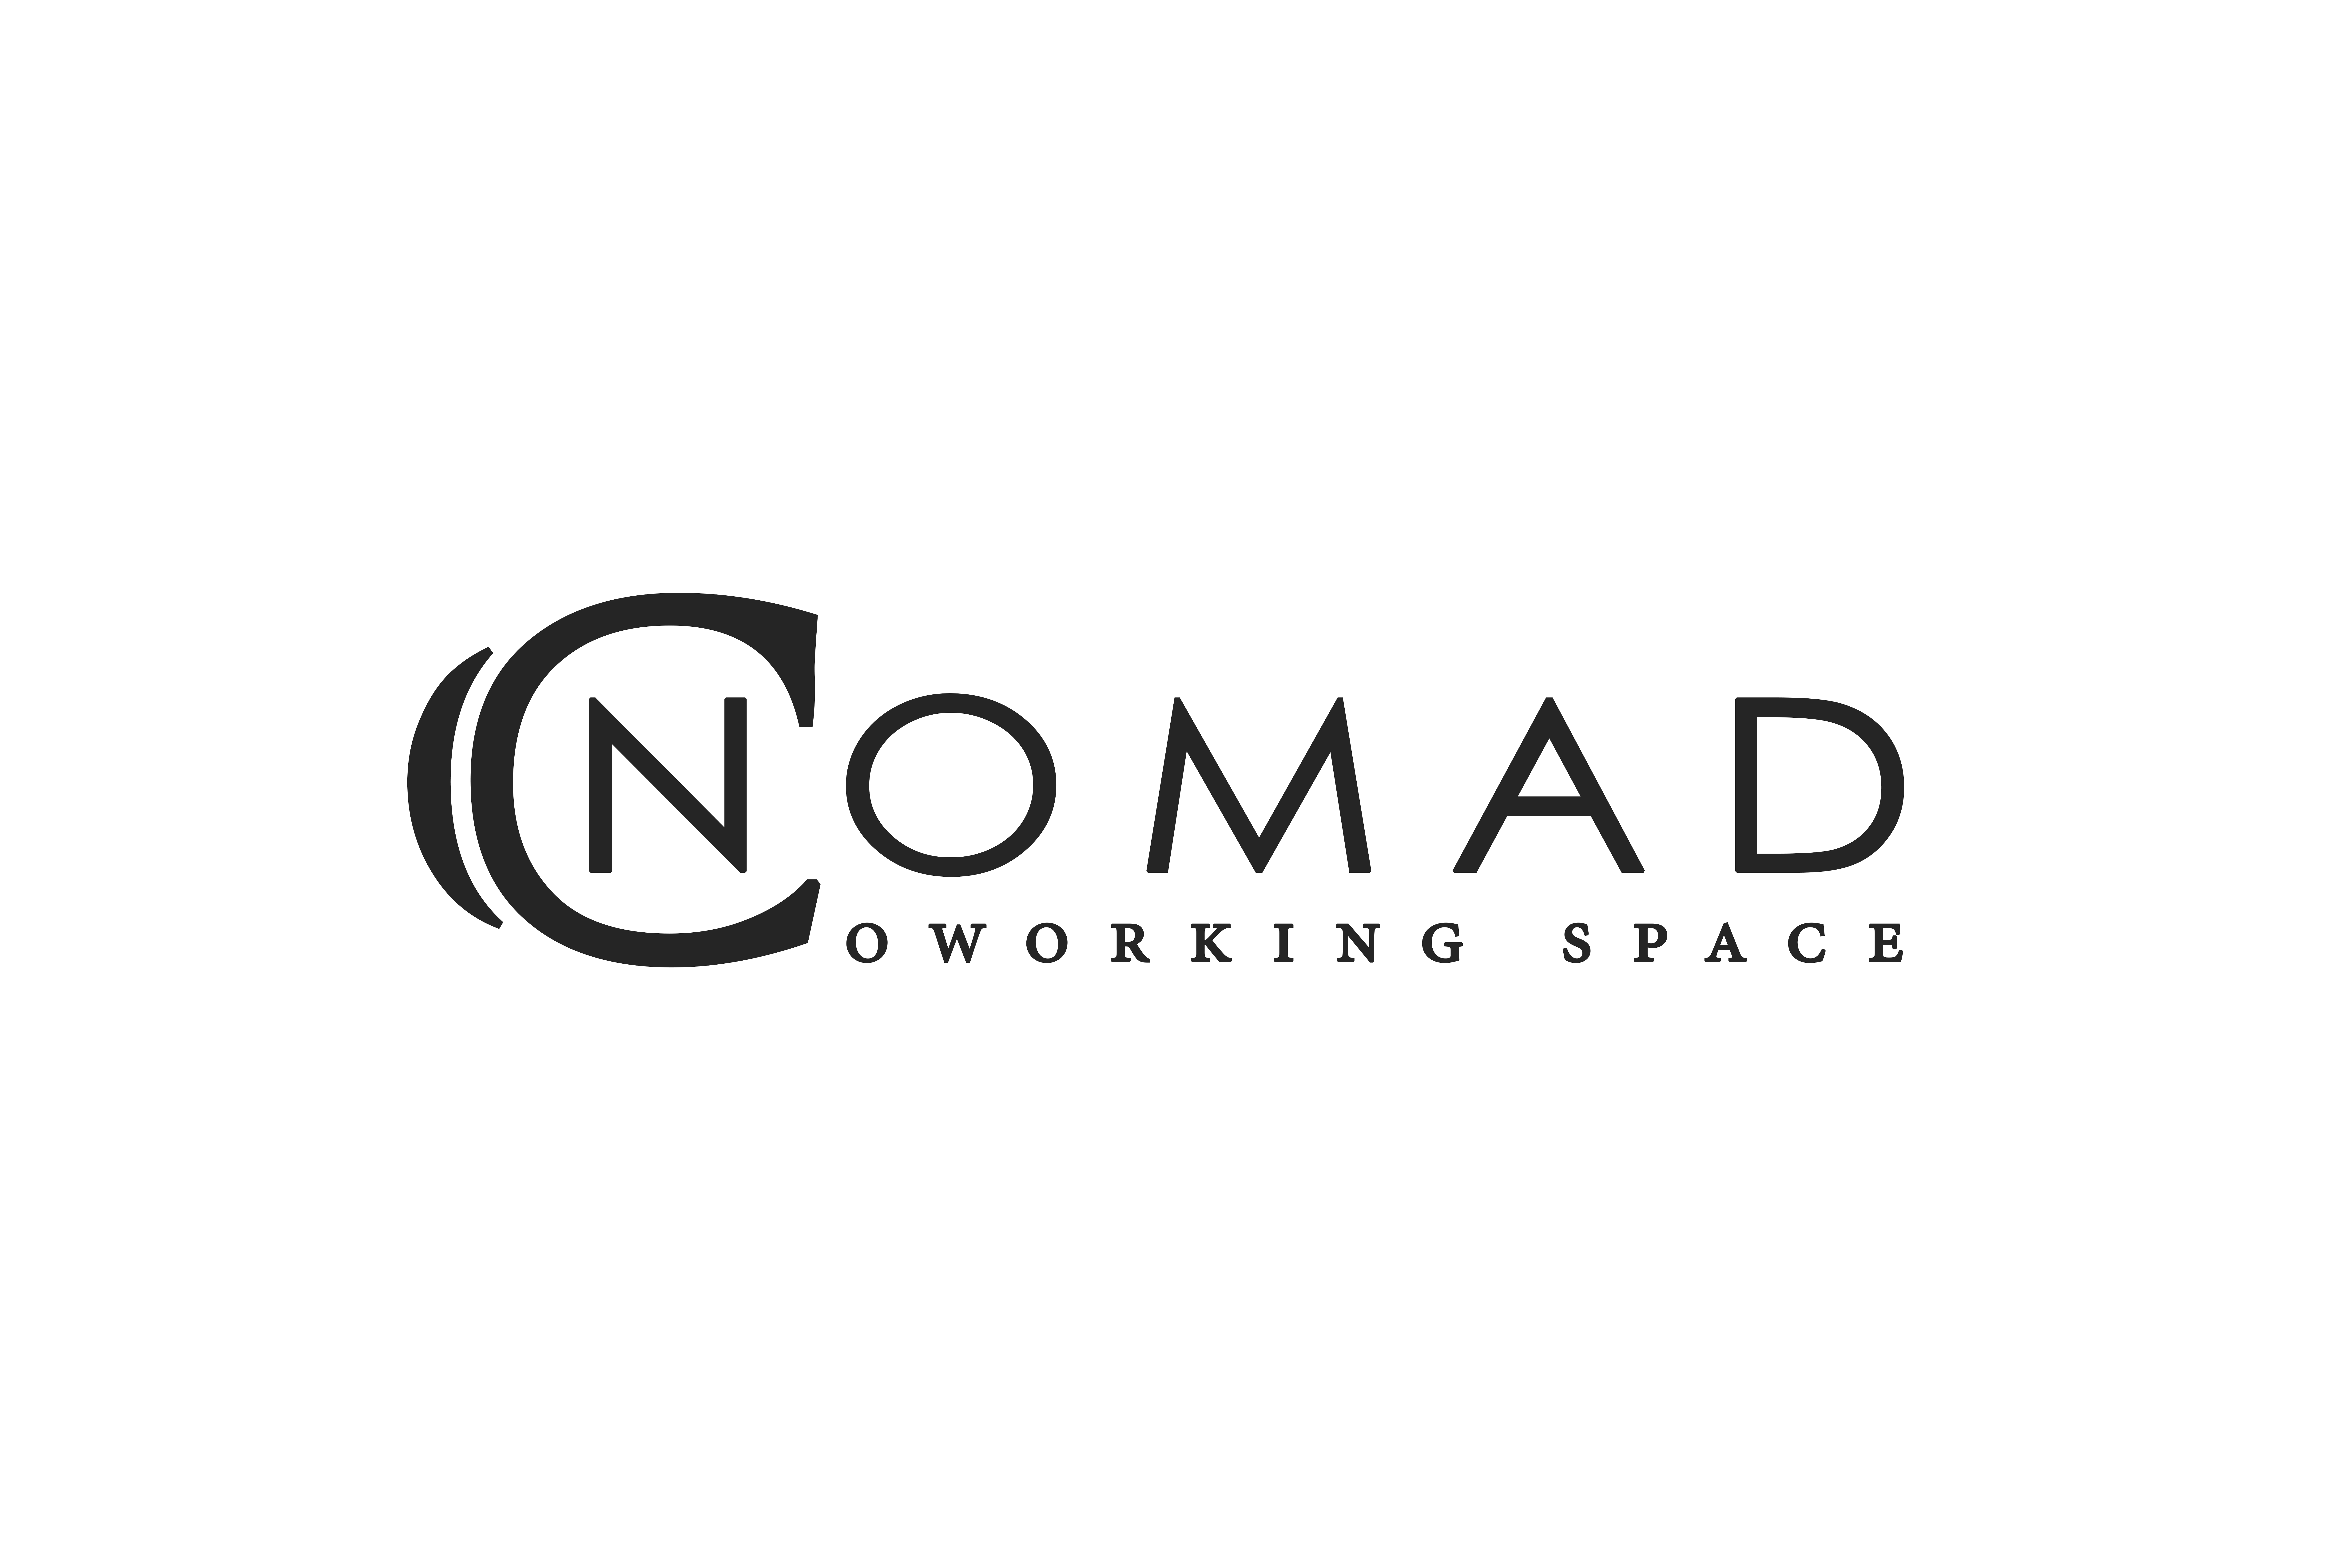 Cnomad virtual offices